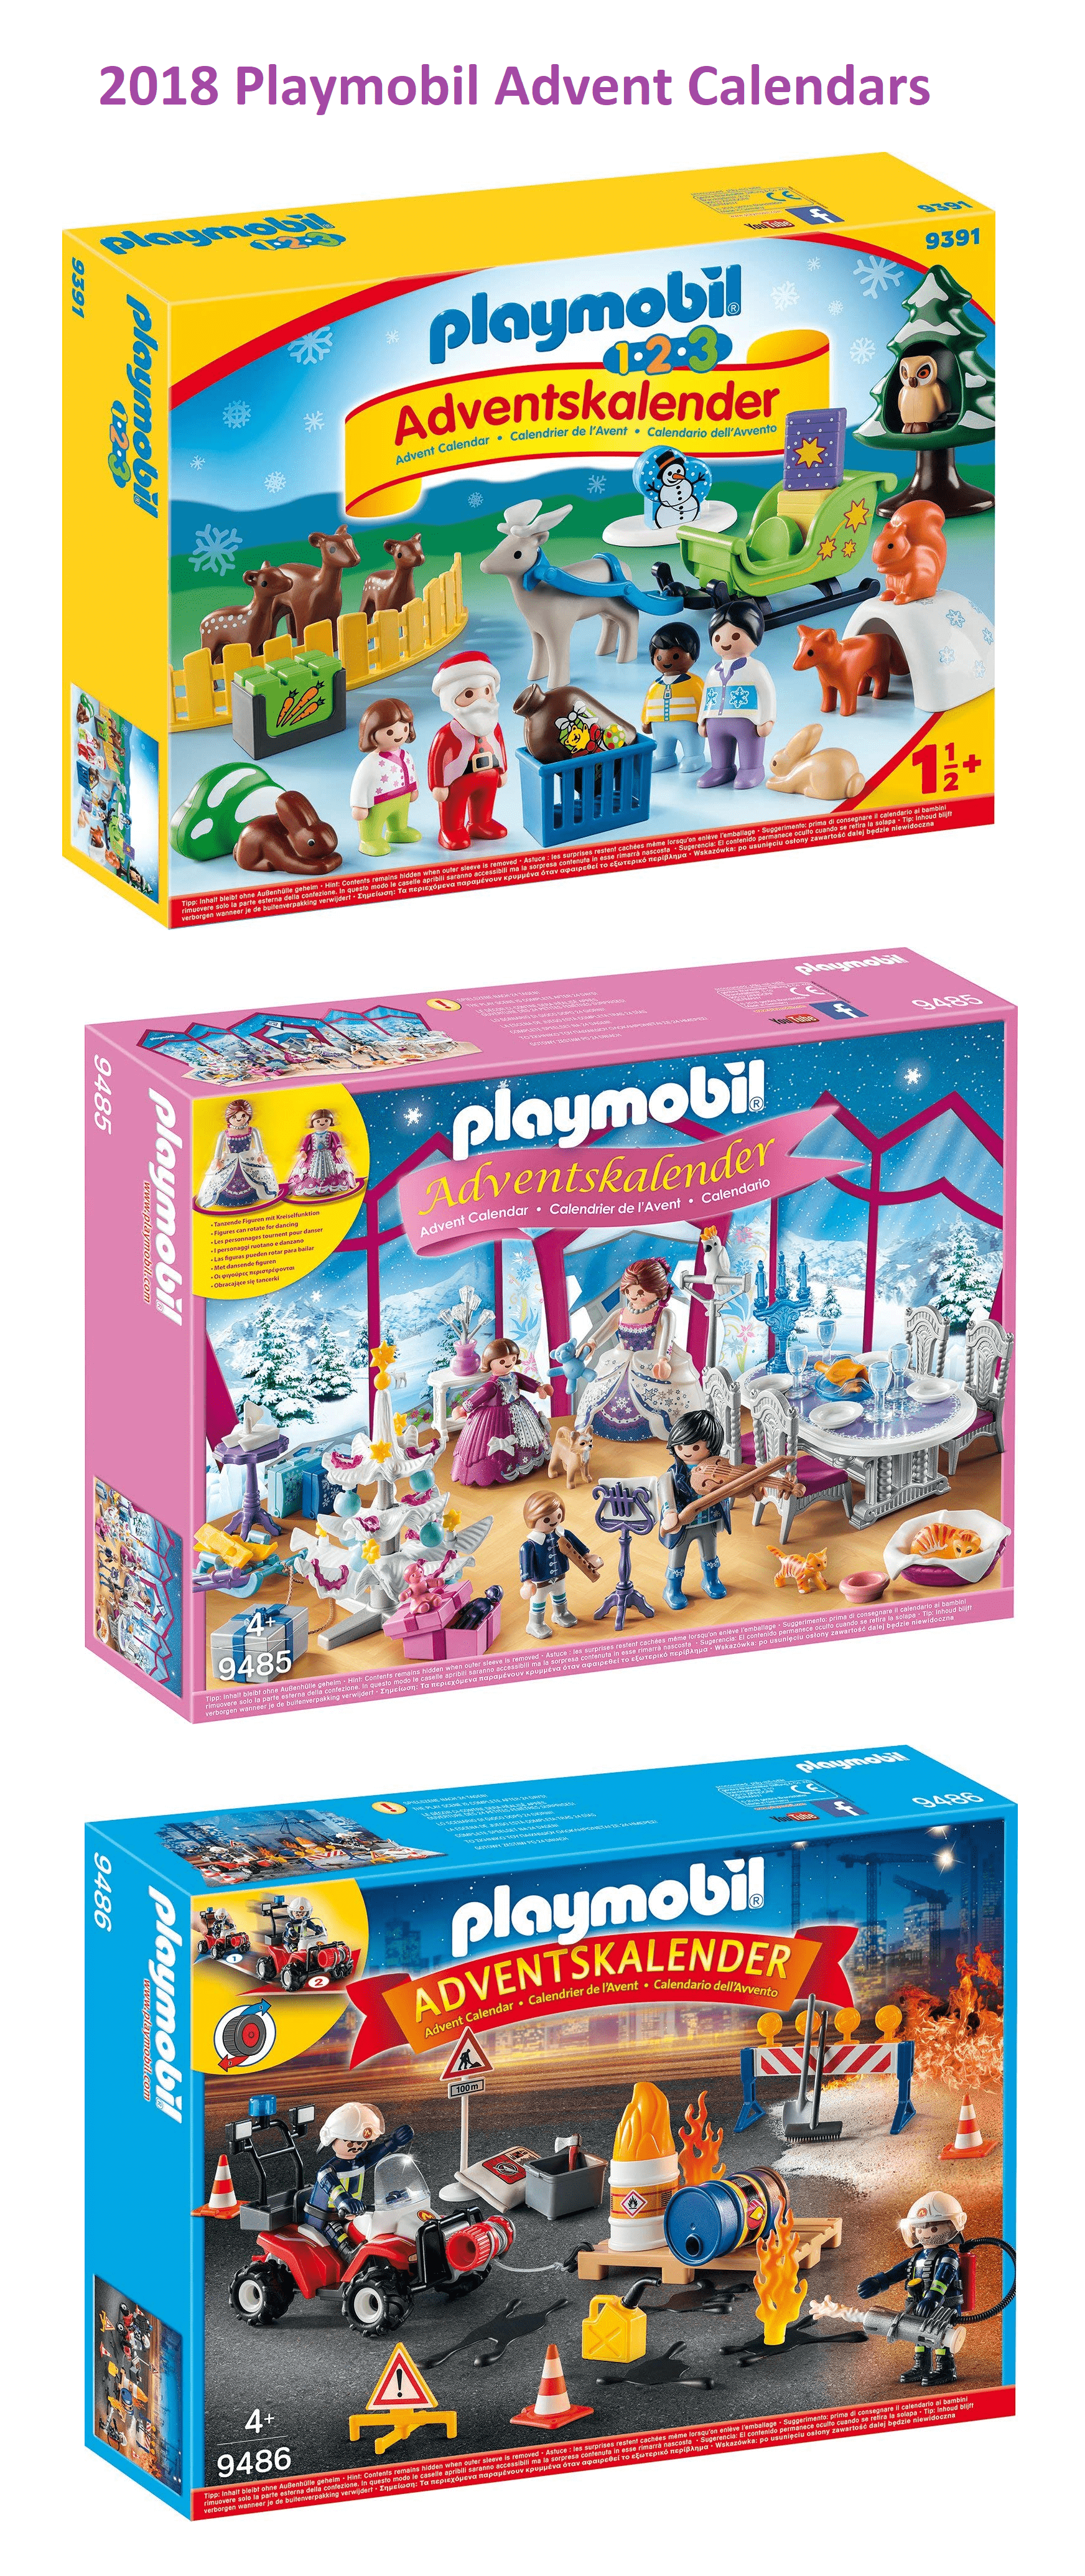 Playmobil 2018 Advent Calendars Coming Soon!